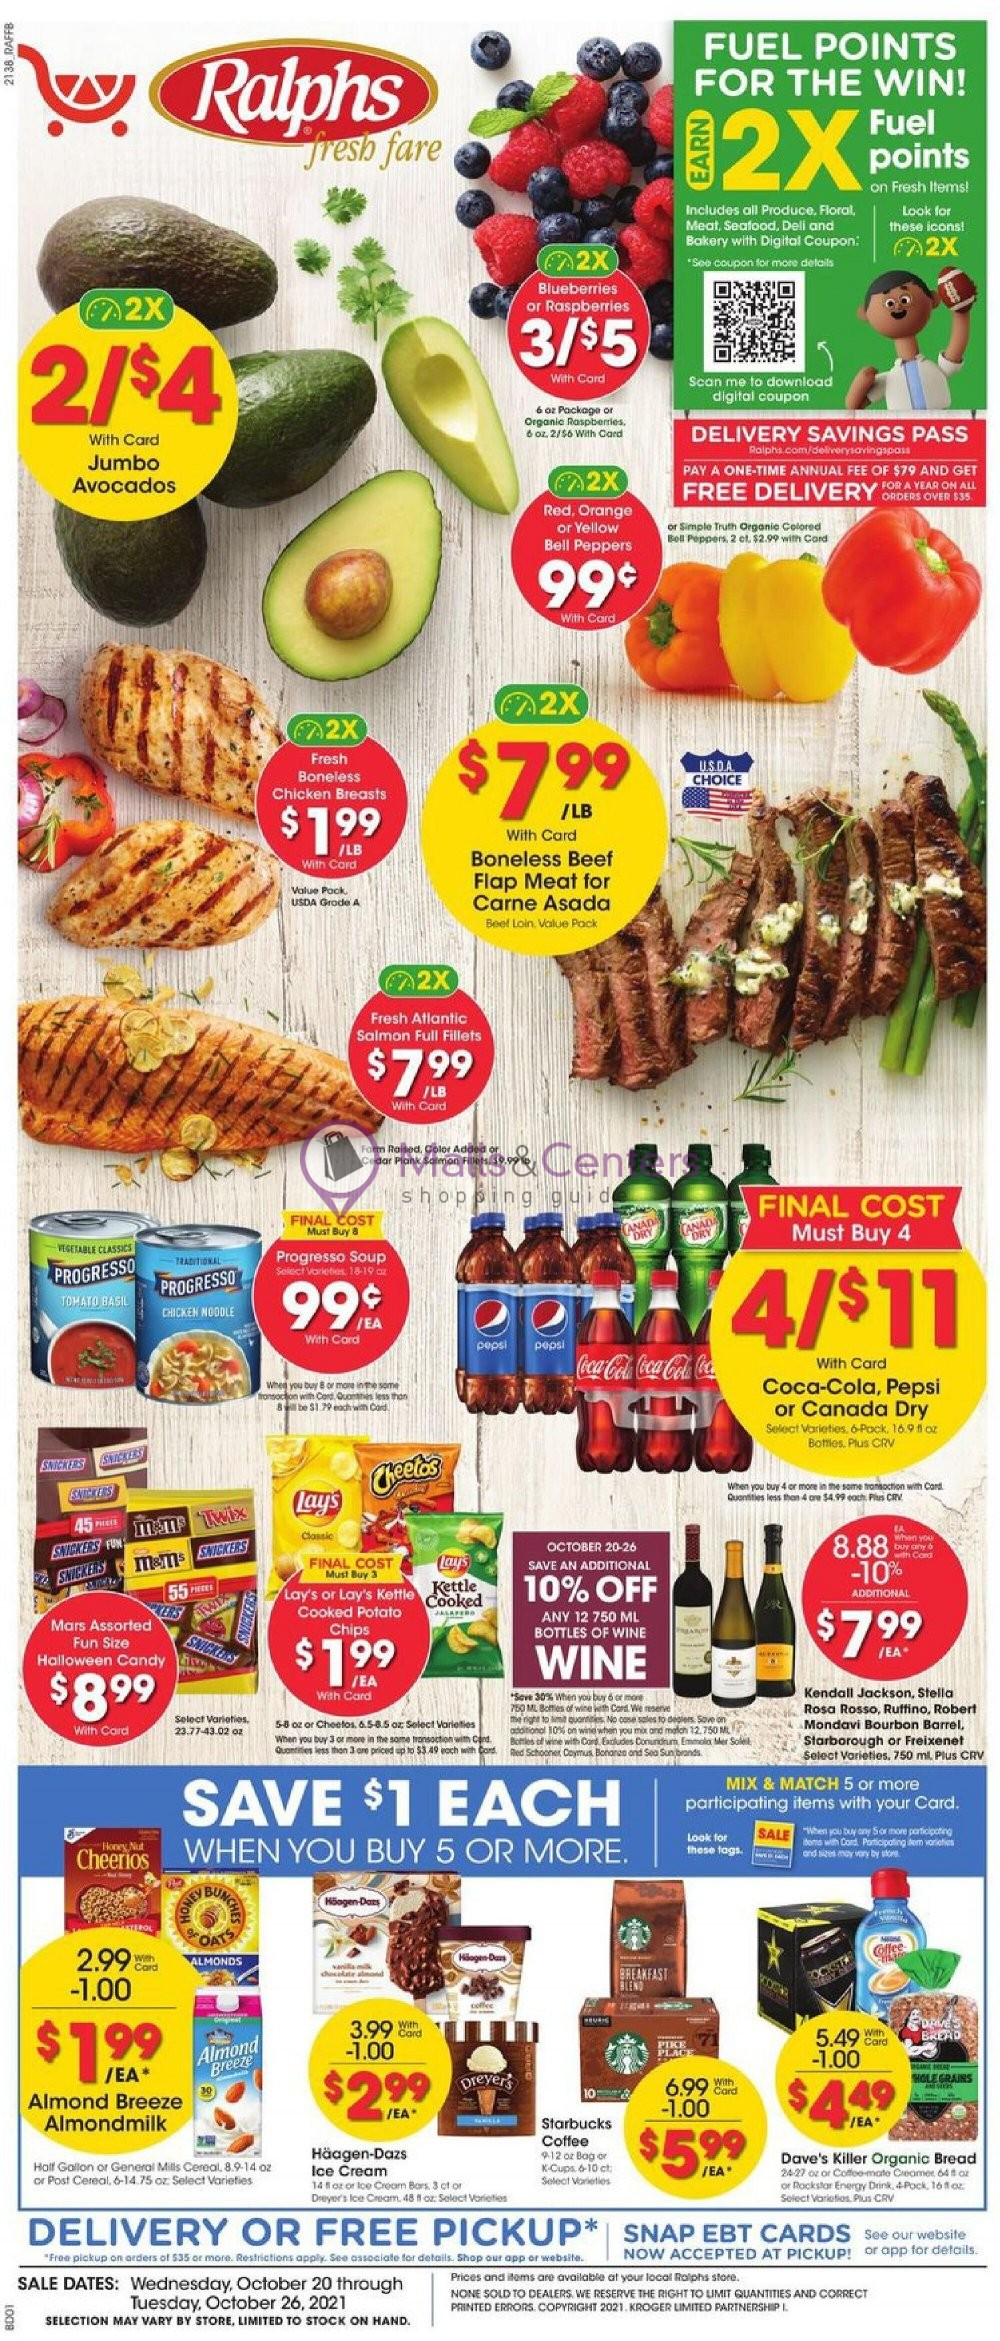 weekly ads Ralphs - page 1 - mallscenters.com